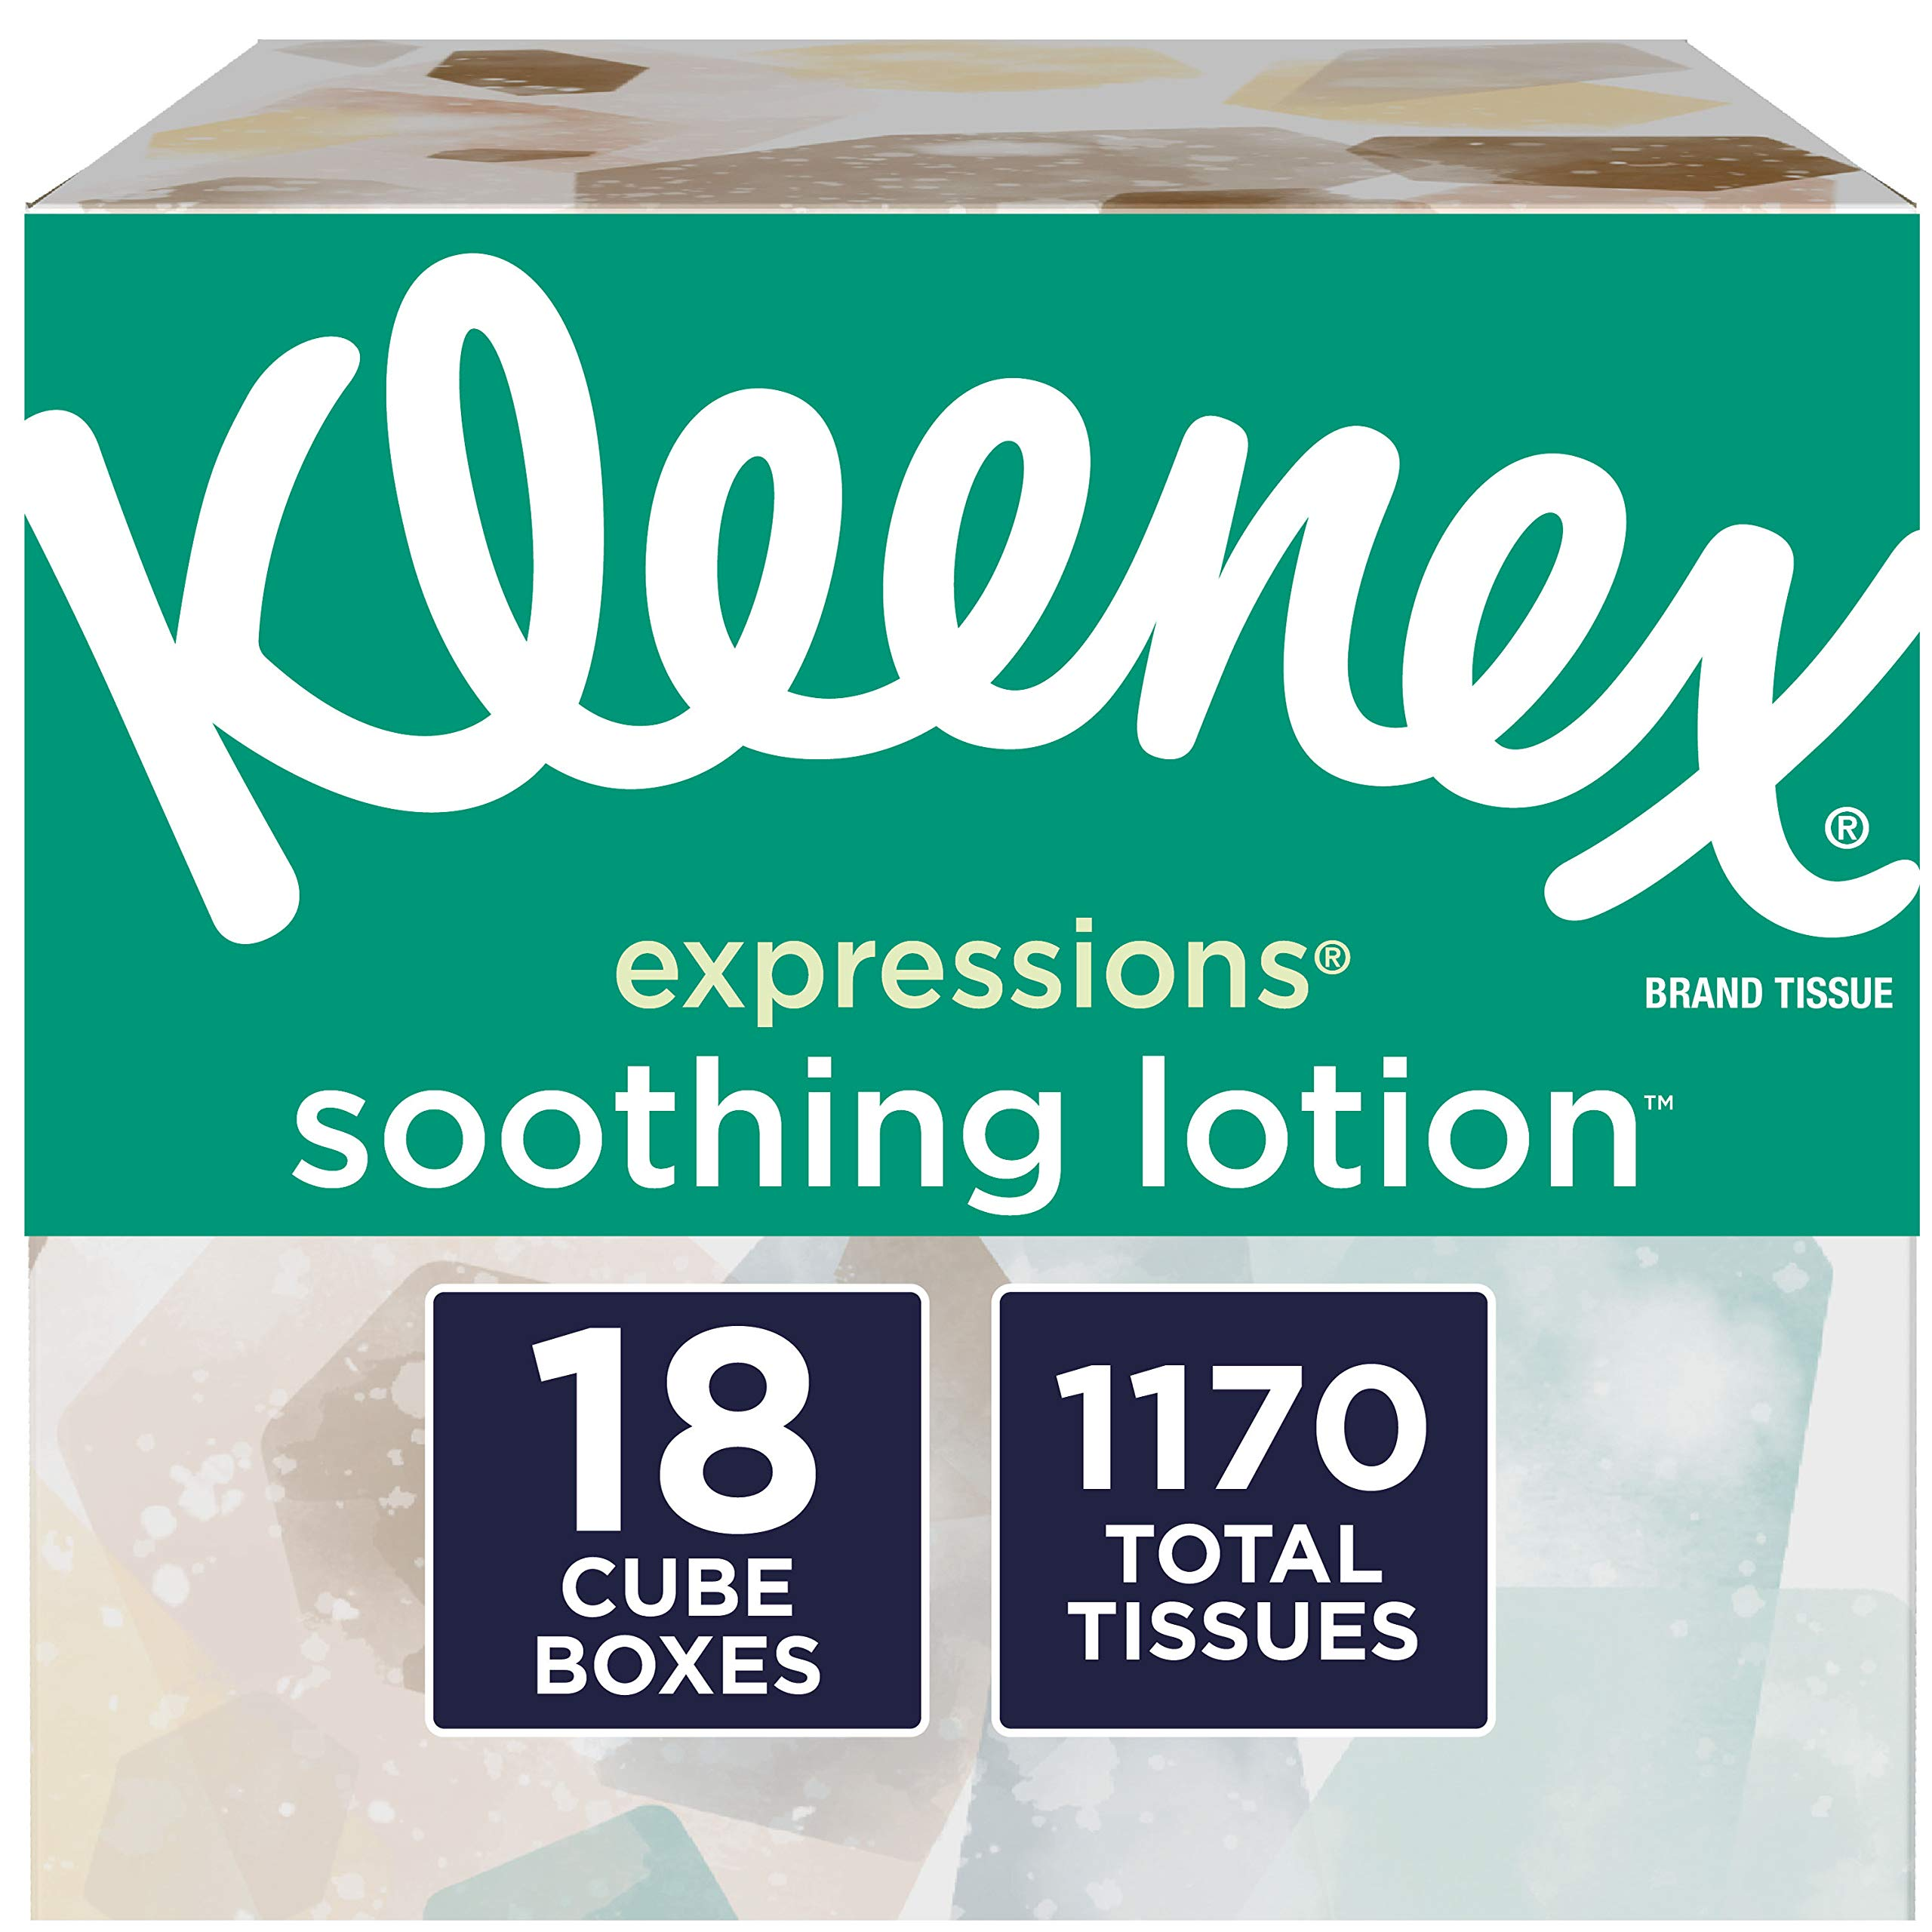 Kleenex Expressions Soothing Lotion Facial Tissues with Aloe & Vitamin E, 18 Cube Boxes, 65 Tissues per Box, (65 Count (Pack of 18)) (1,170 Tissues Total)